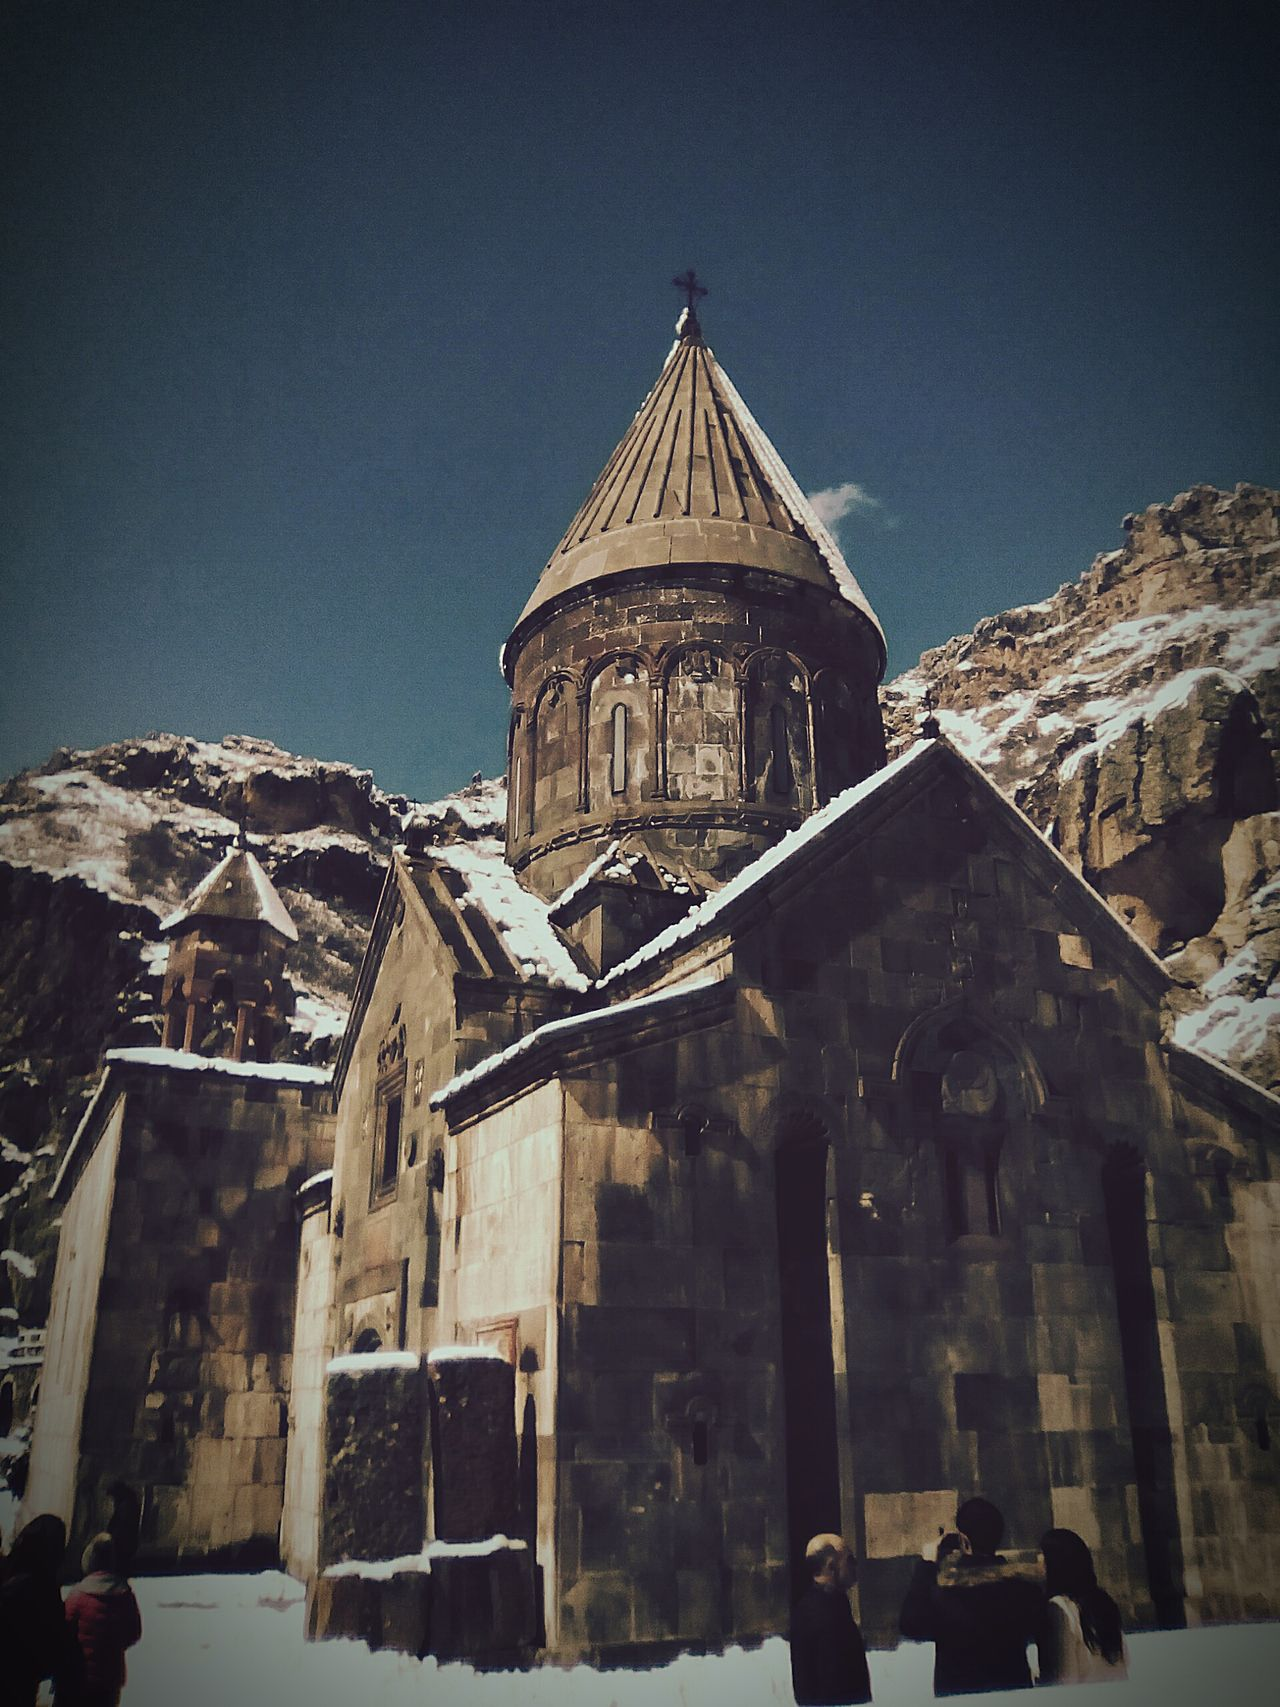 Architecture History Religion Travel Destinations Built Structure Building Exterior Place Of Worship Outdoors Ancient Winter Snow Sky Medieval City Mountain Wonderful View Landscape Garni Geghart 😍😌😊 Spring With Snow Traveling In Armenia